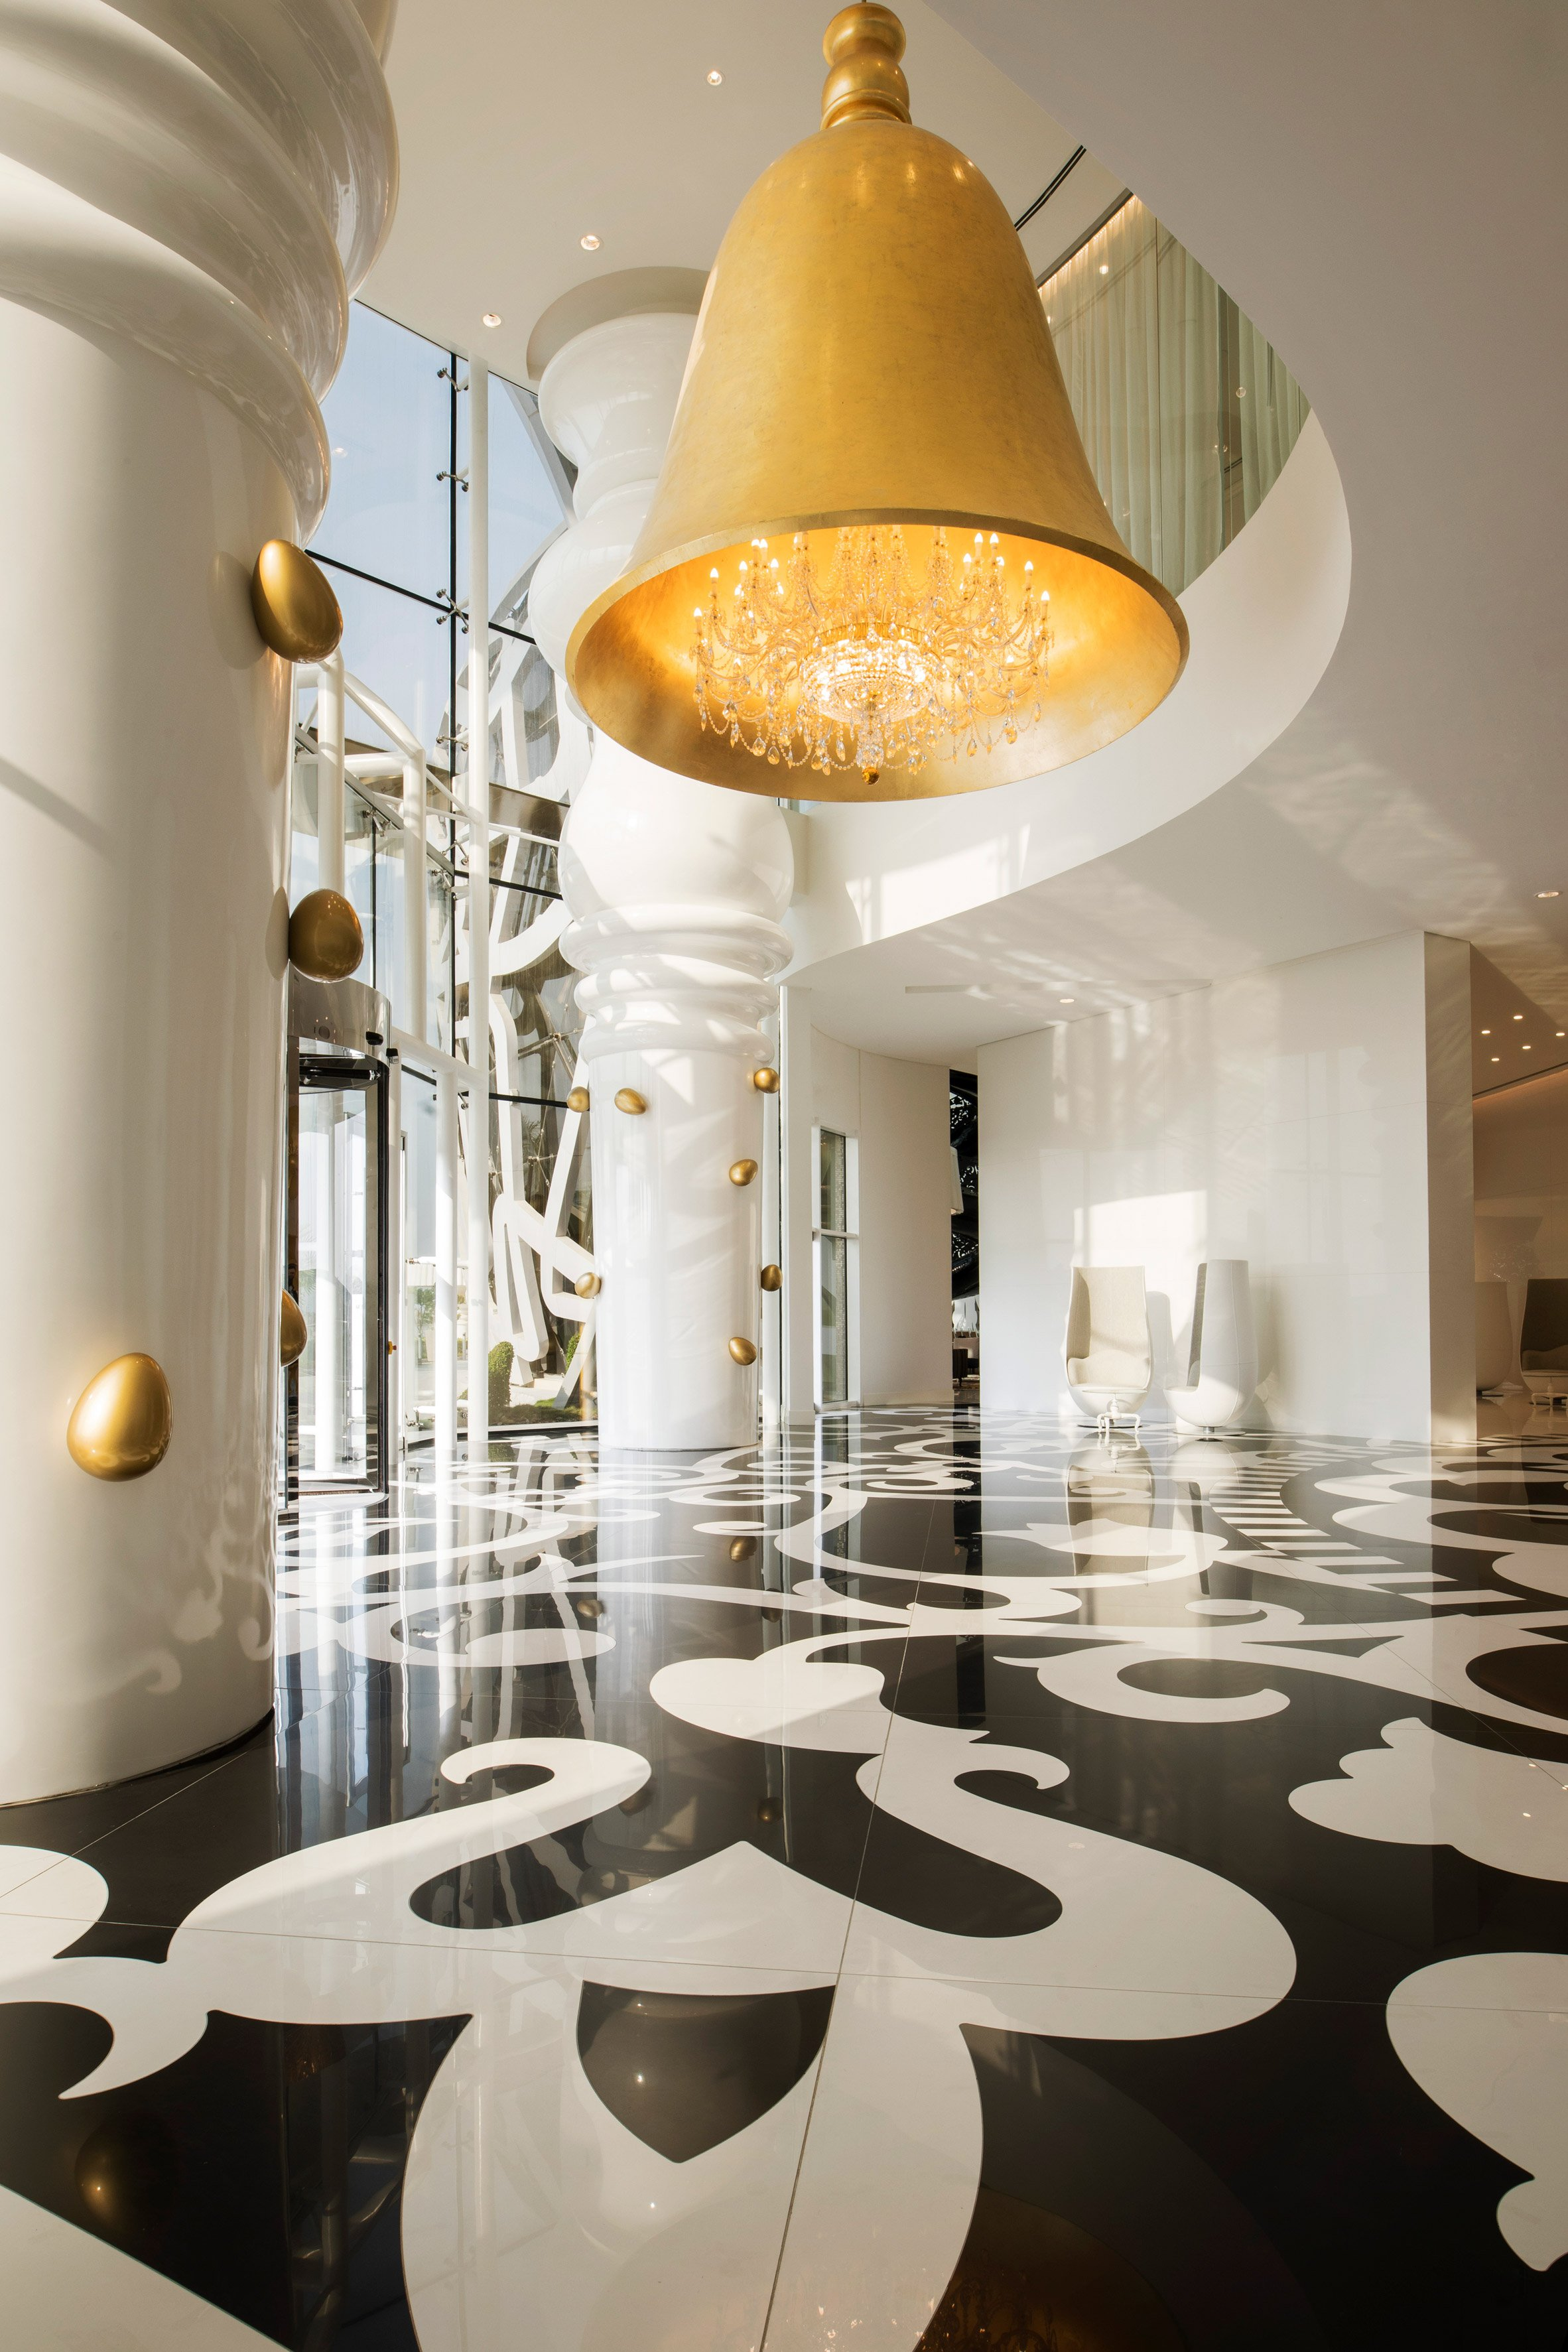 Marcel Wanders Uses Mismatched Patterns And Oversized Furnishings For Doha Hotel Indigo Interiors